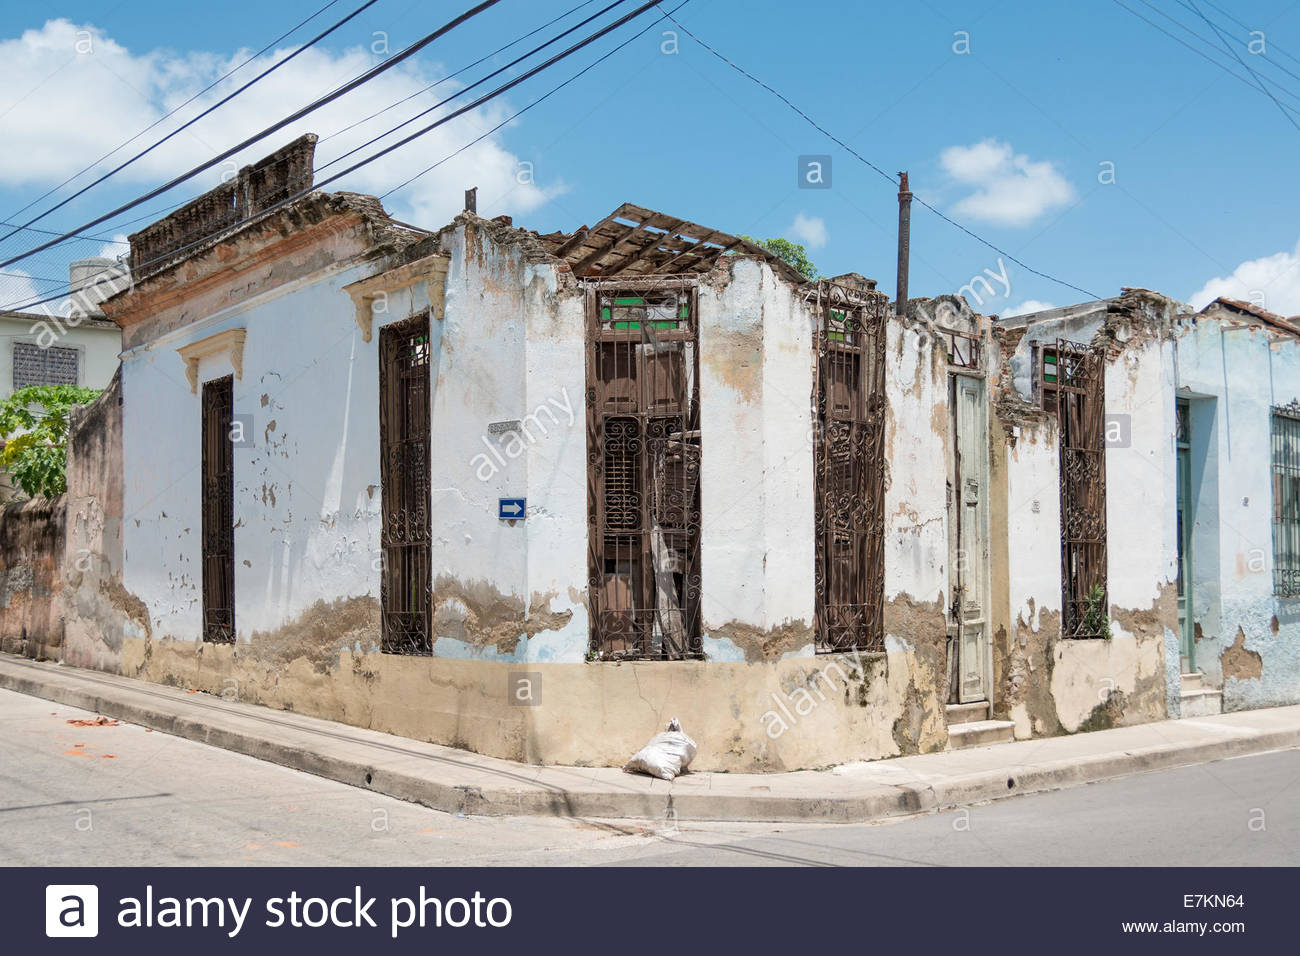 Old colonial houses falling apart due to lack of maintenance - Stock Image